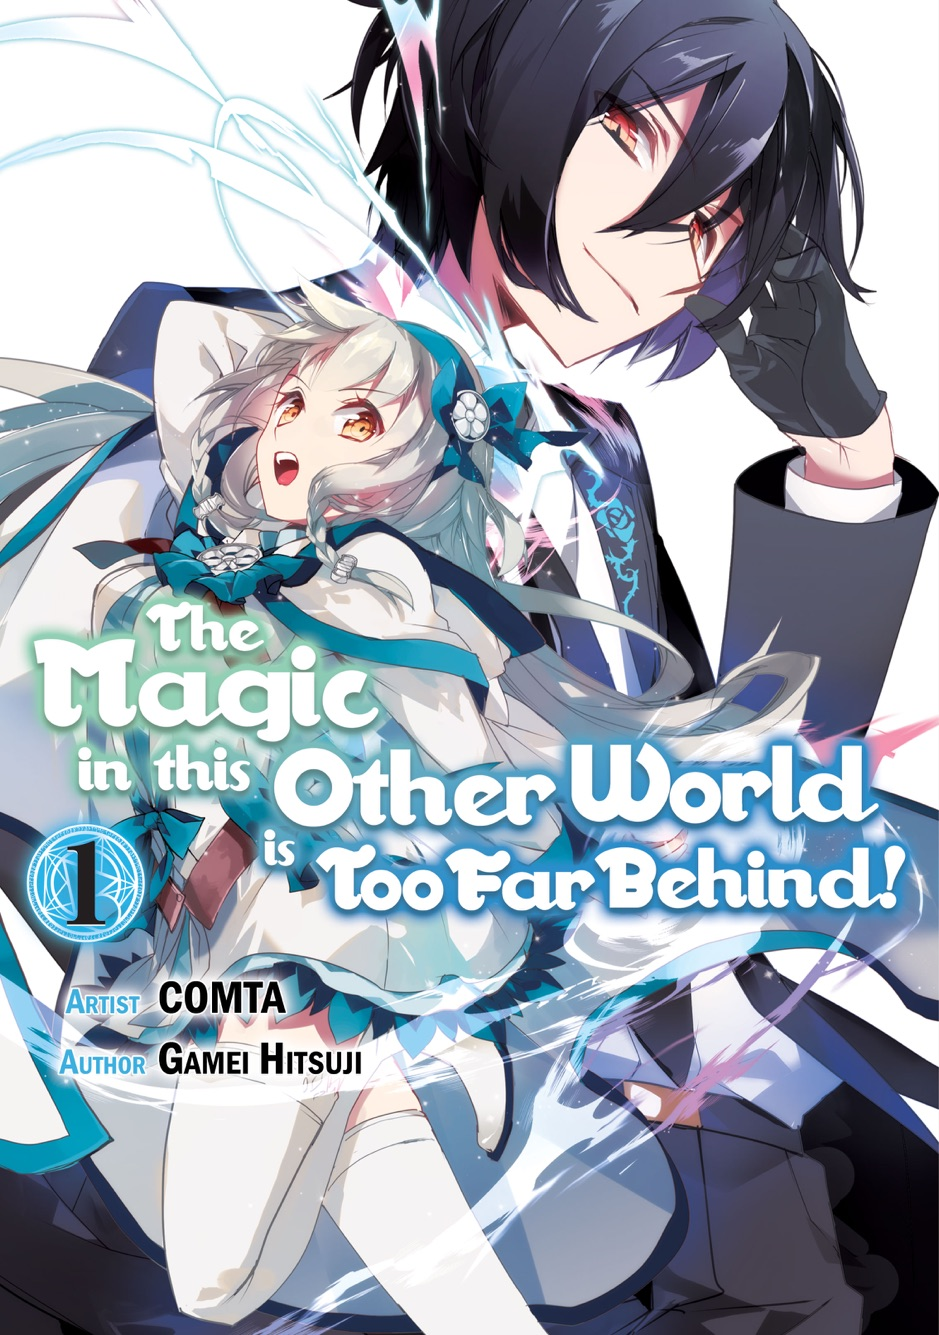 The Magic in this Other World is Too Far Behind! (Manga) Volume 1